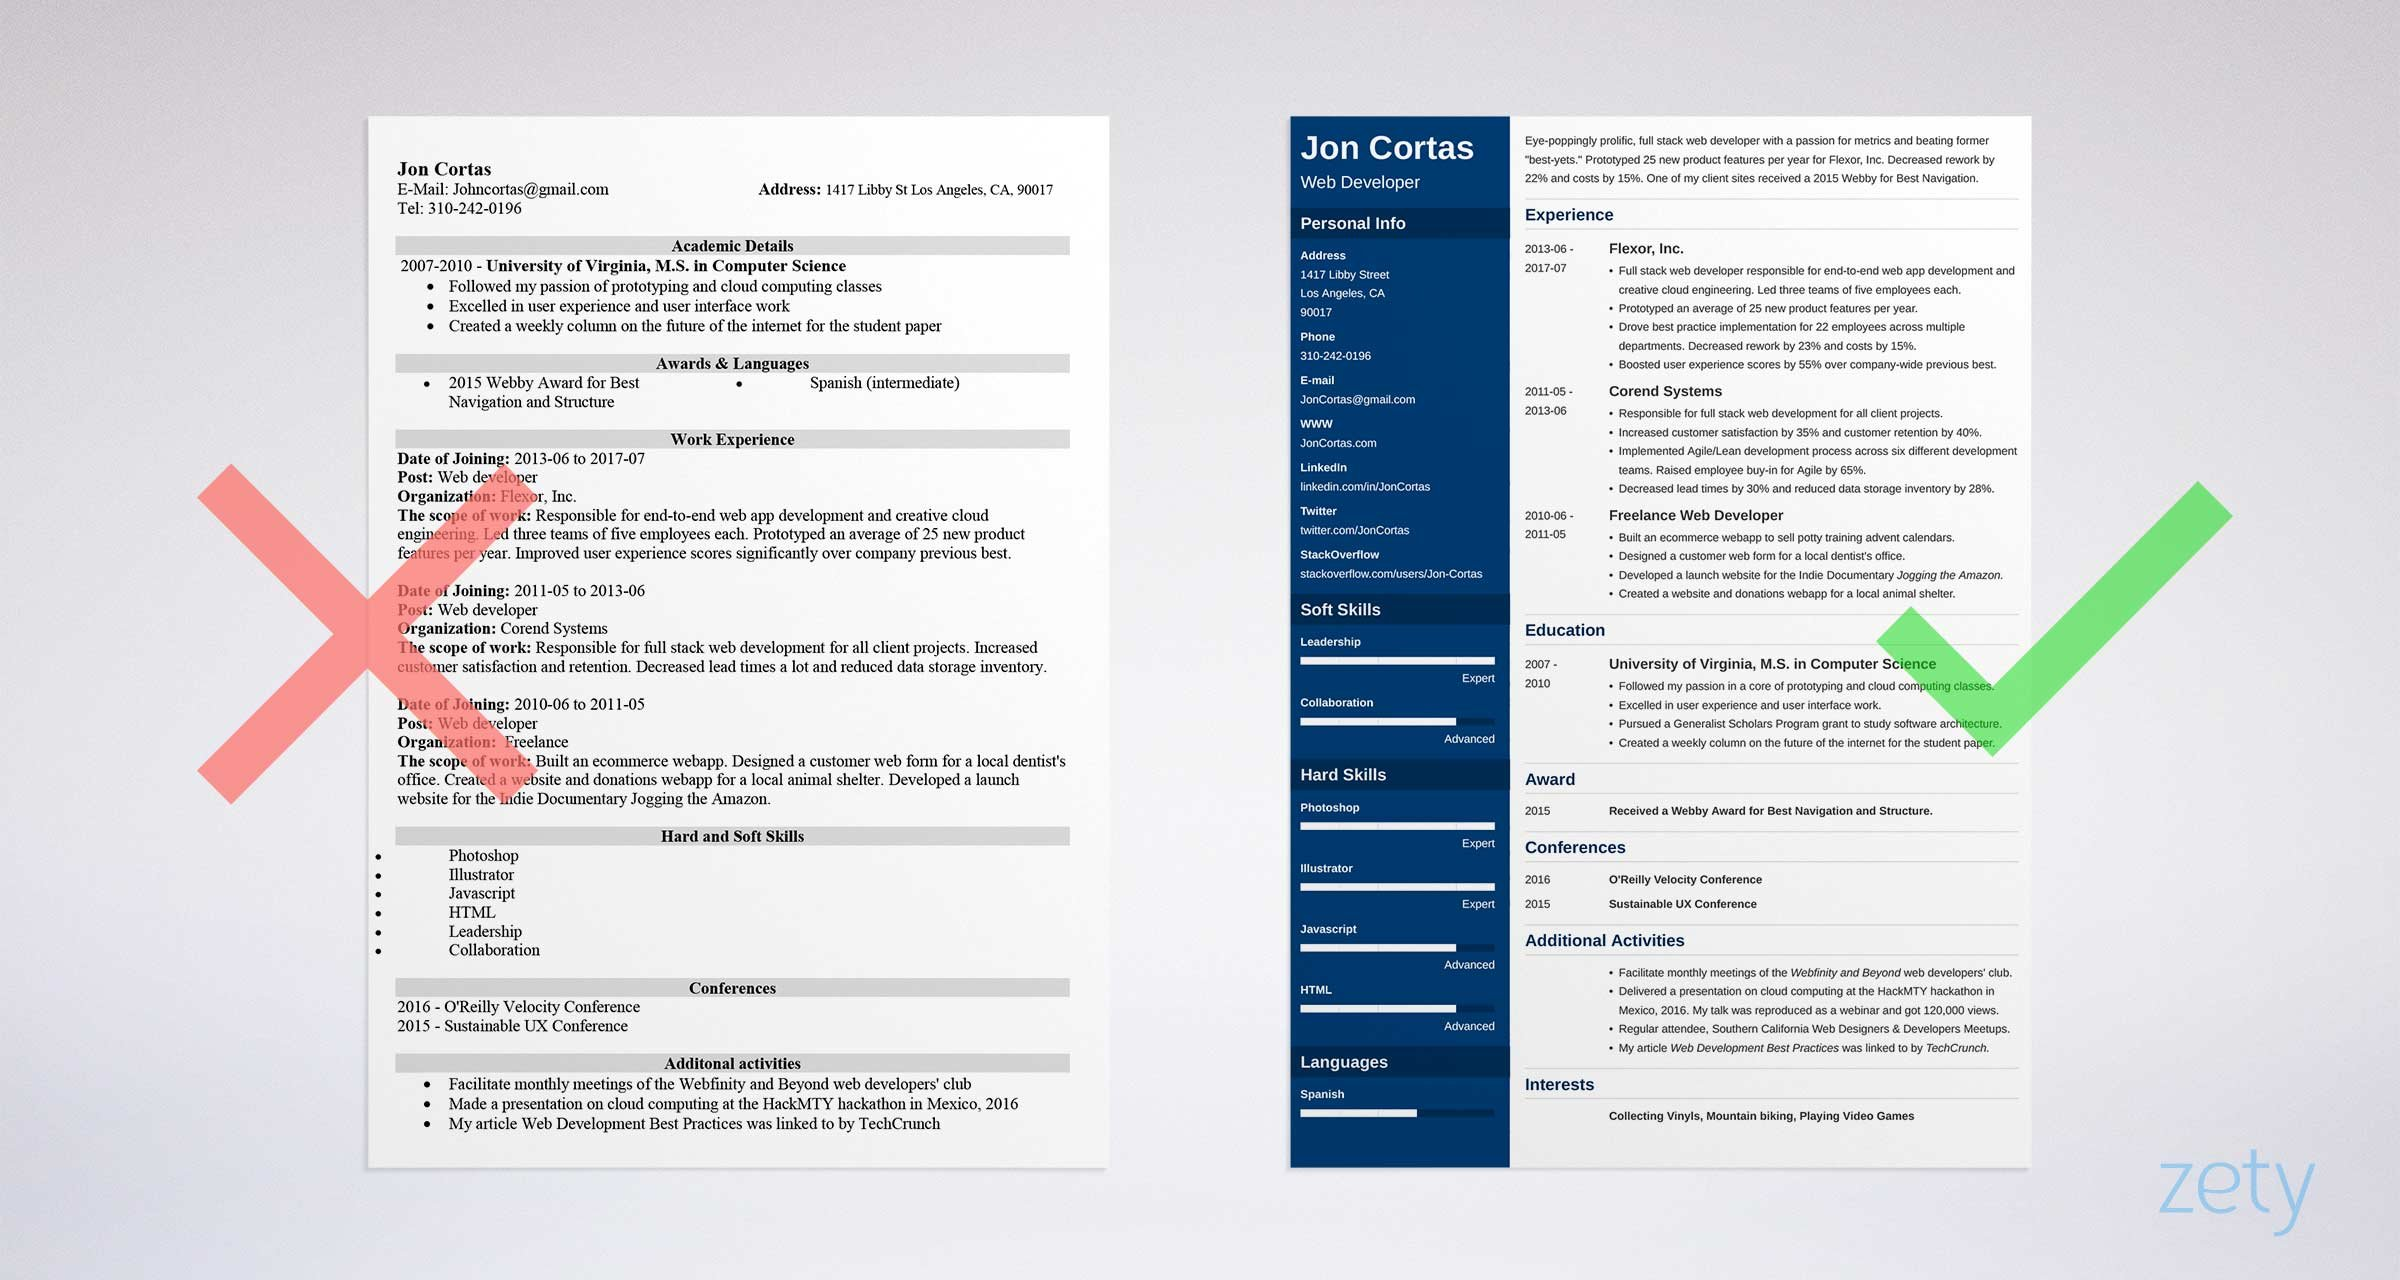 should resume ideal length one or two for web developer agile work journeyman sheet metal Resume One Or Two Page Resume 2019